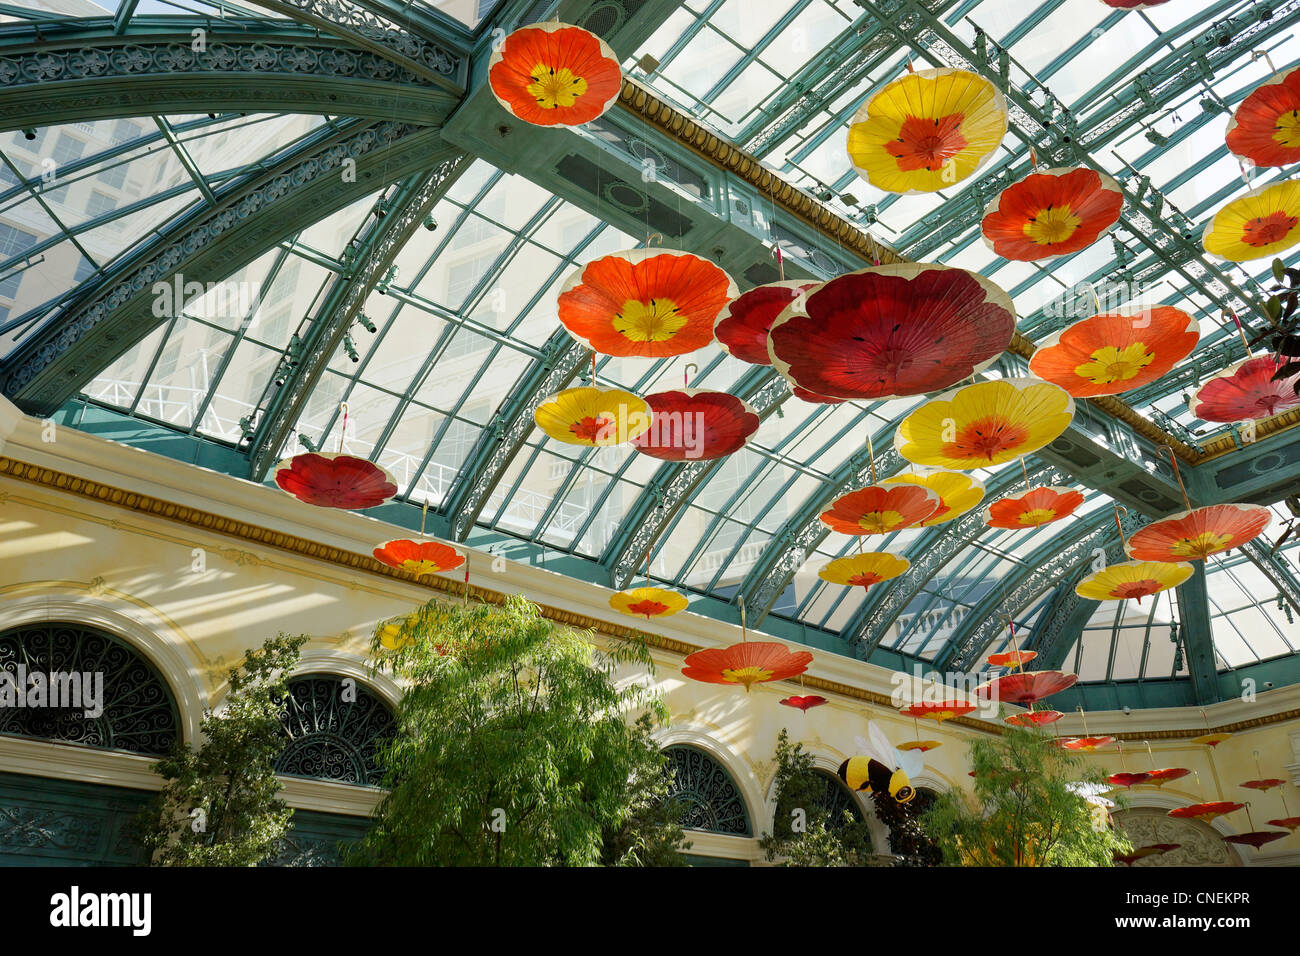 Bellagio Hotel and Casino, Ceiling of the Conservatory, Garden, Las Vegas - Stock Image